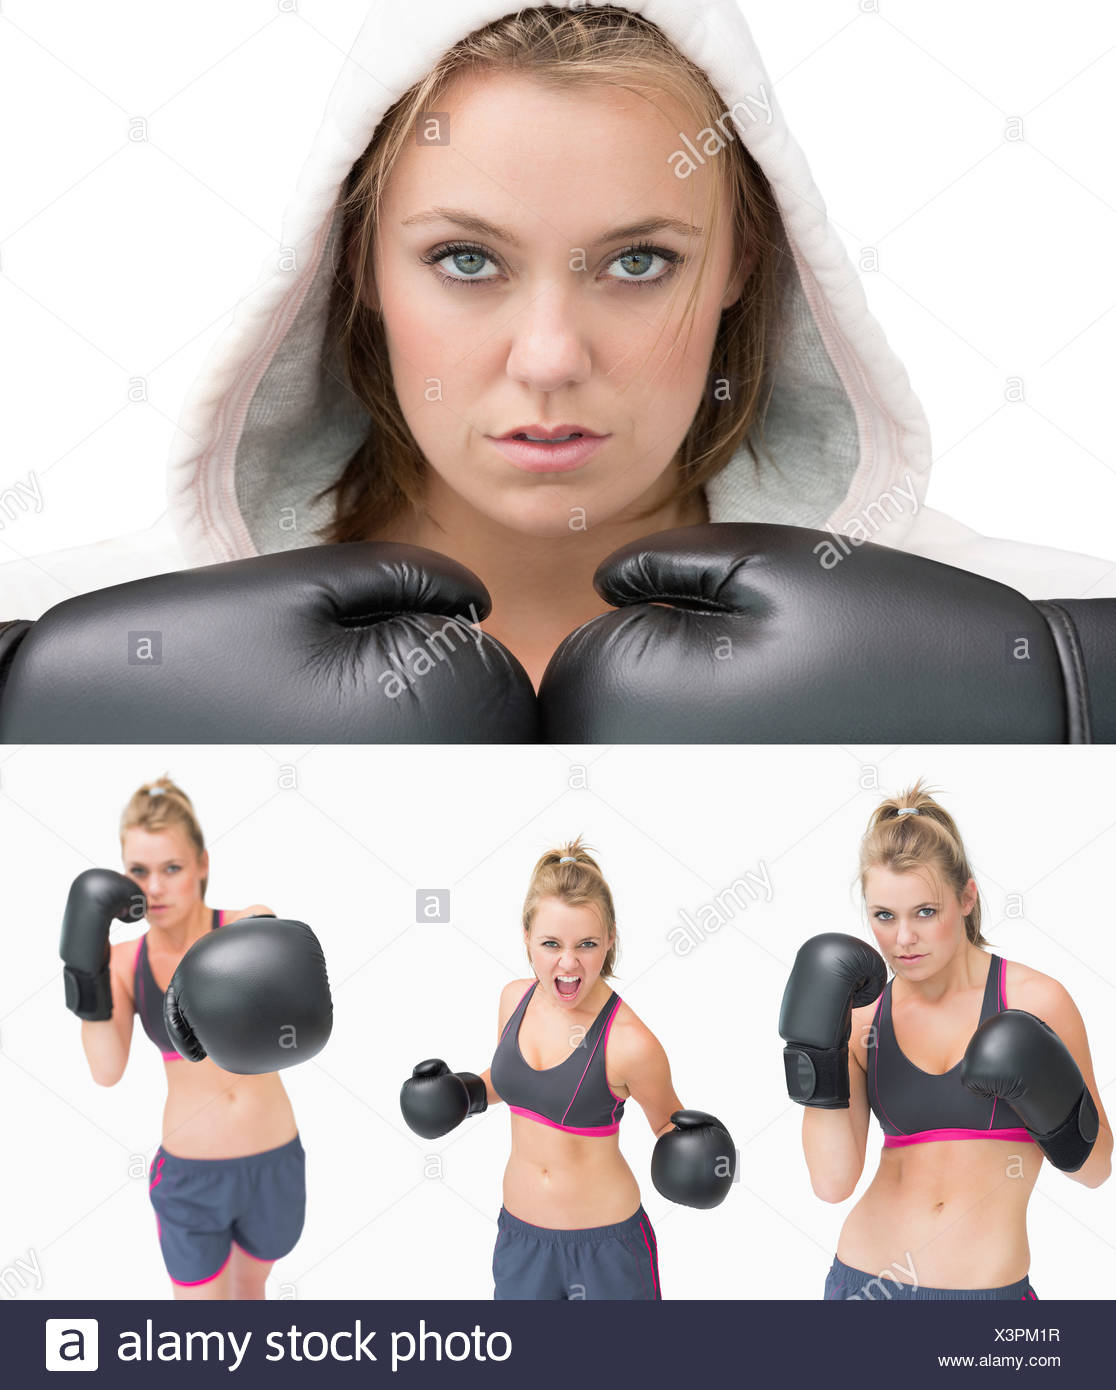 Collage of a woman boxing - Stock Image